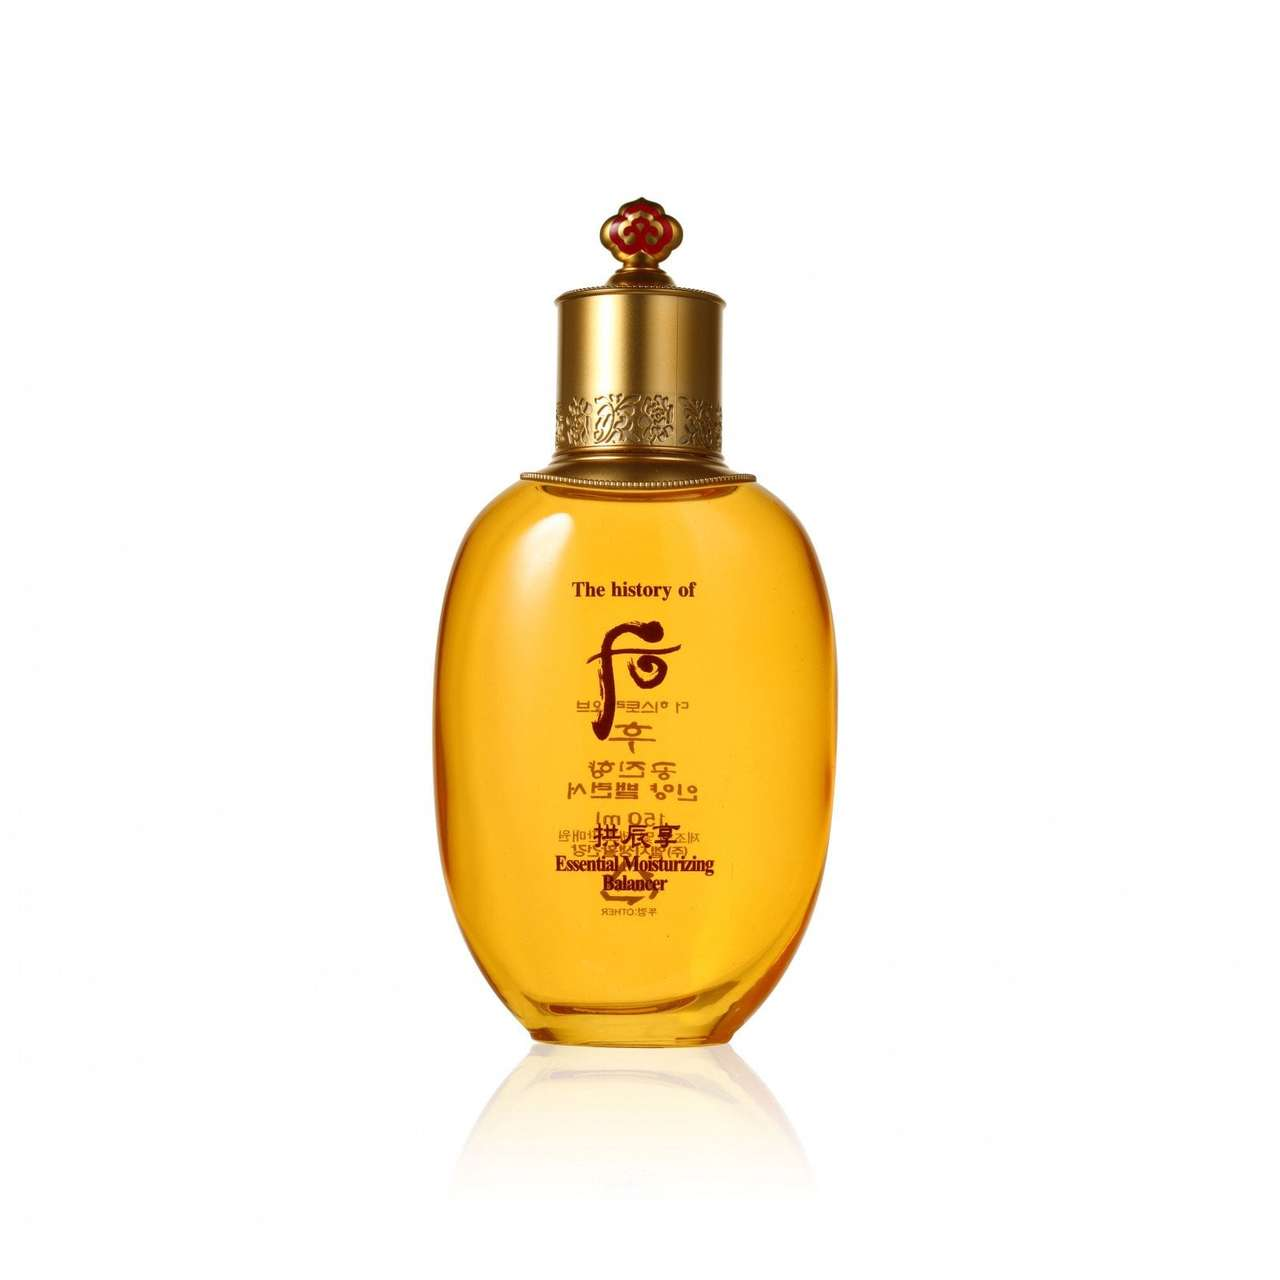 nuoc-can-bang-the-history-of-whoo-gongjinhyang-essential-moisturizing-balancer-review-thanh-phan-gia-cong-dung